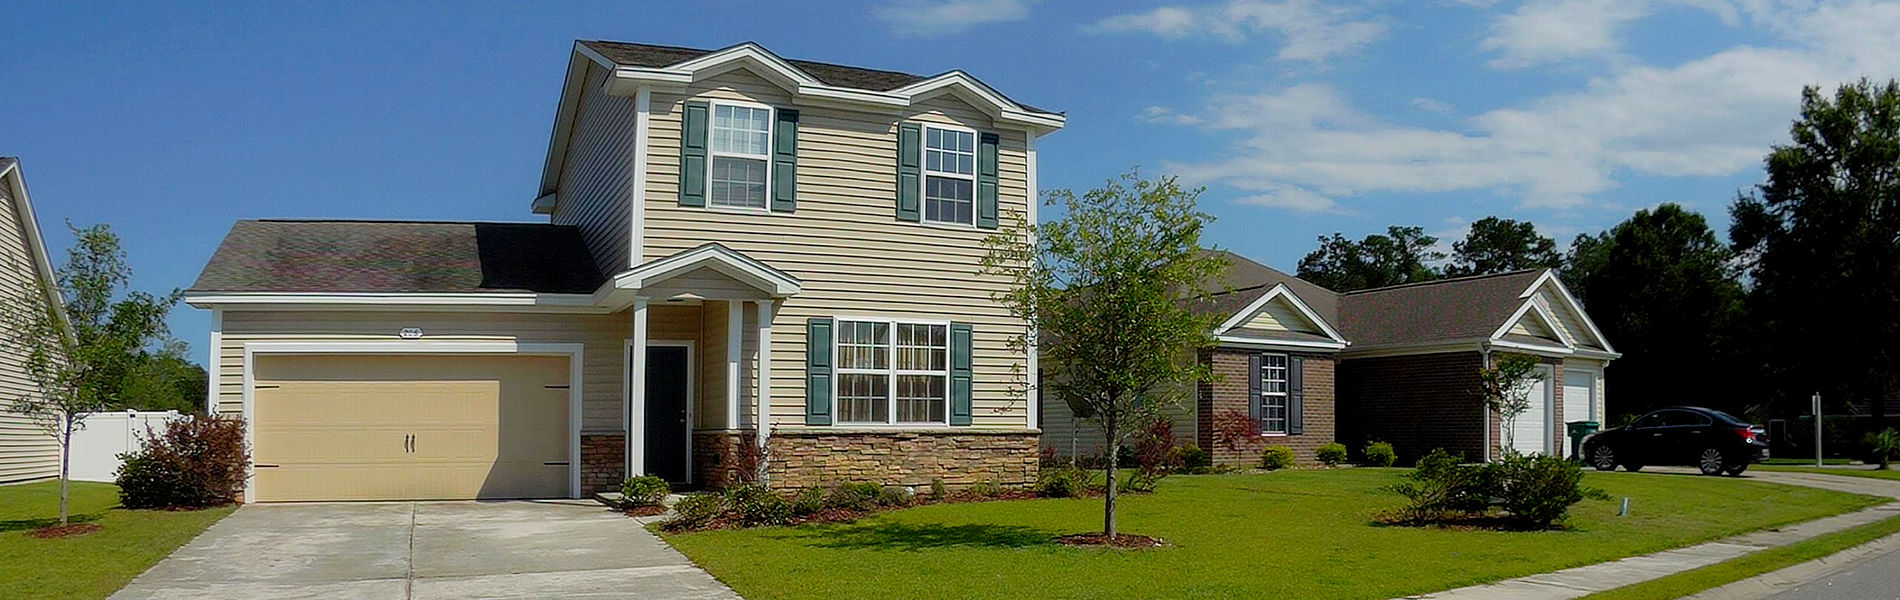 Homes For Sale in Subdivision, City SC